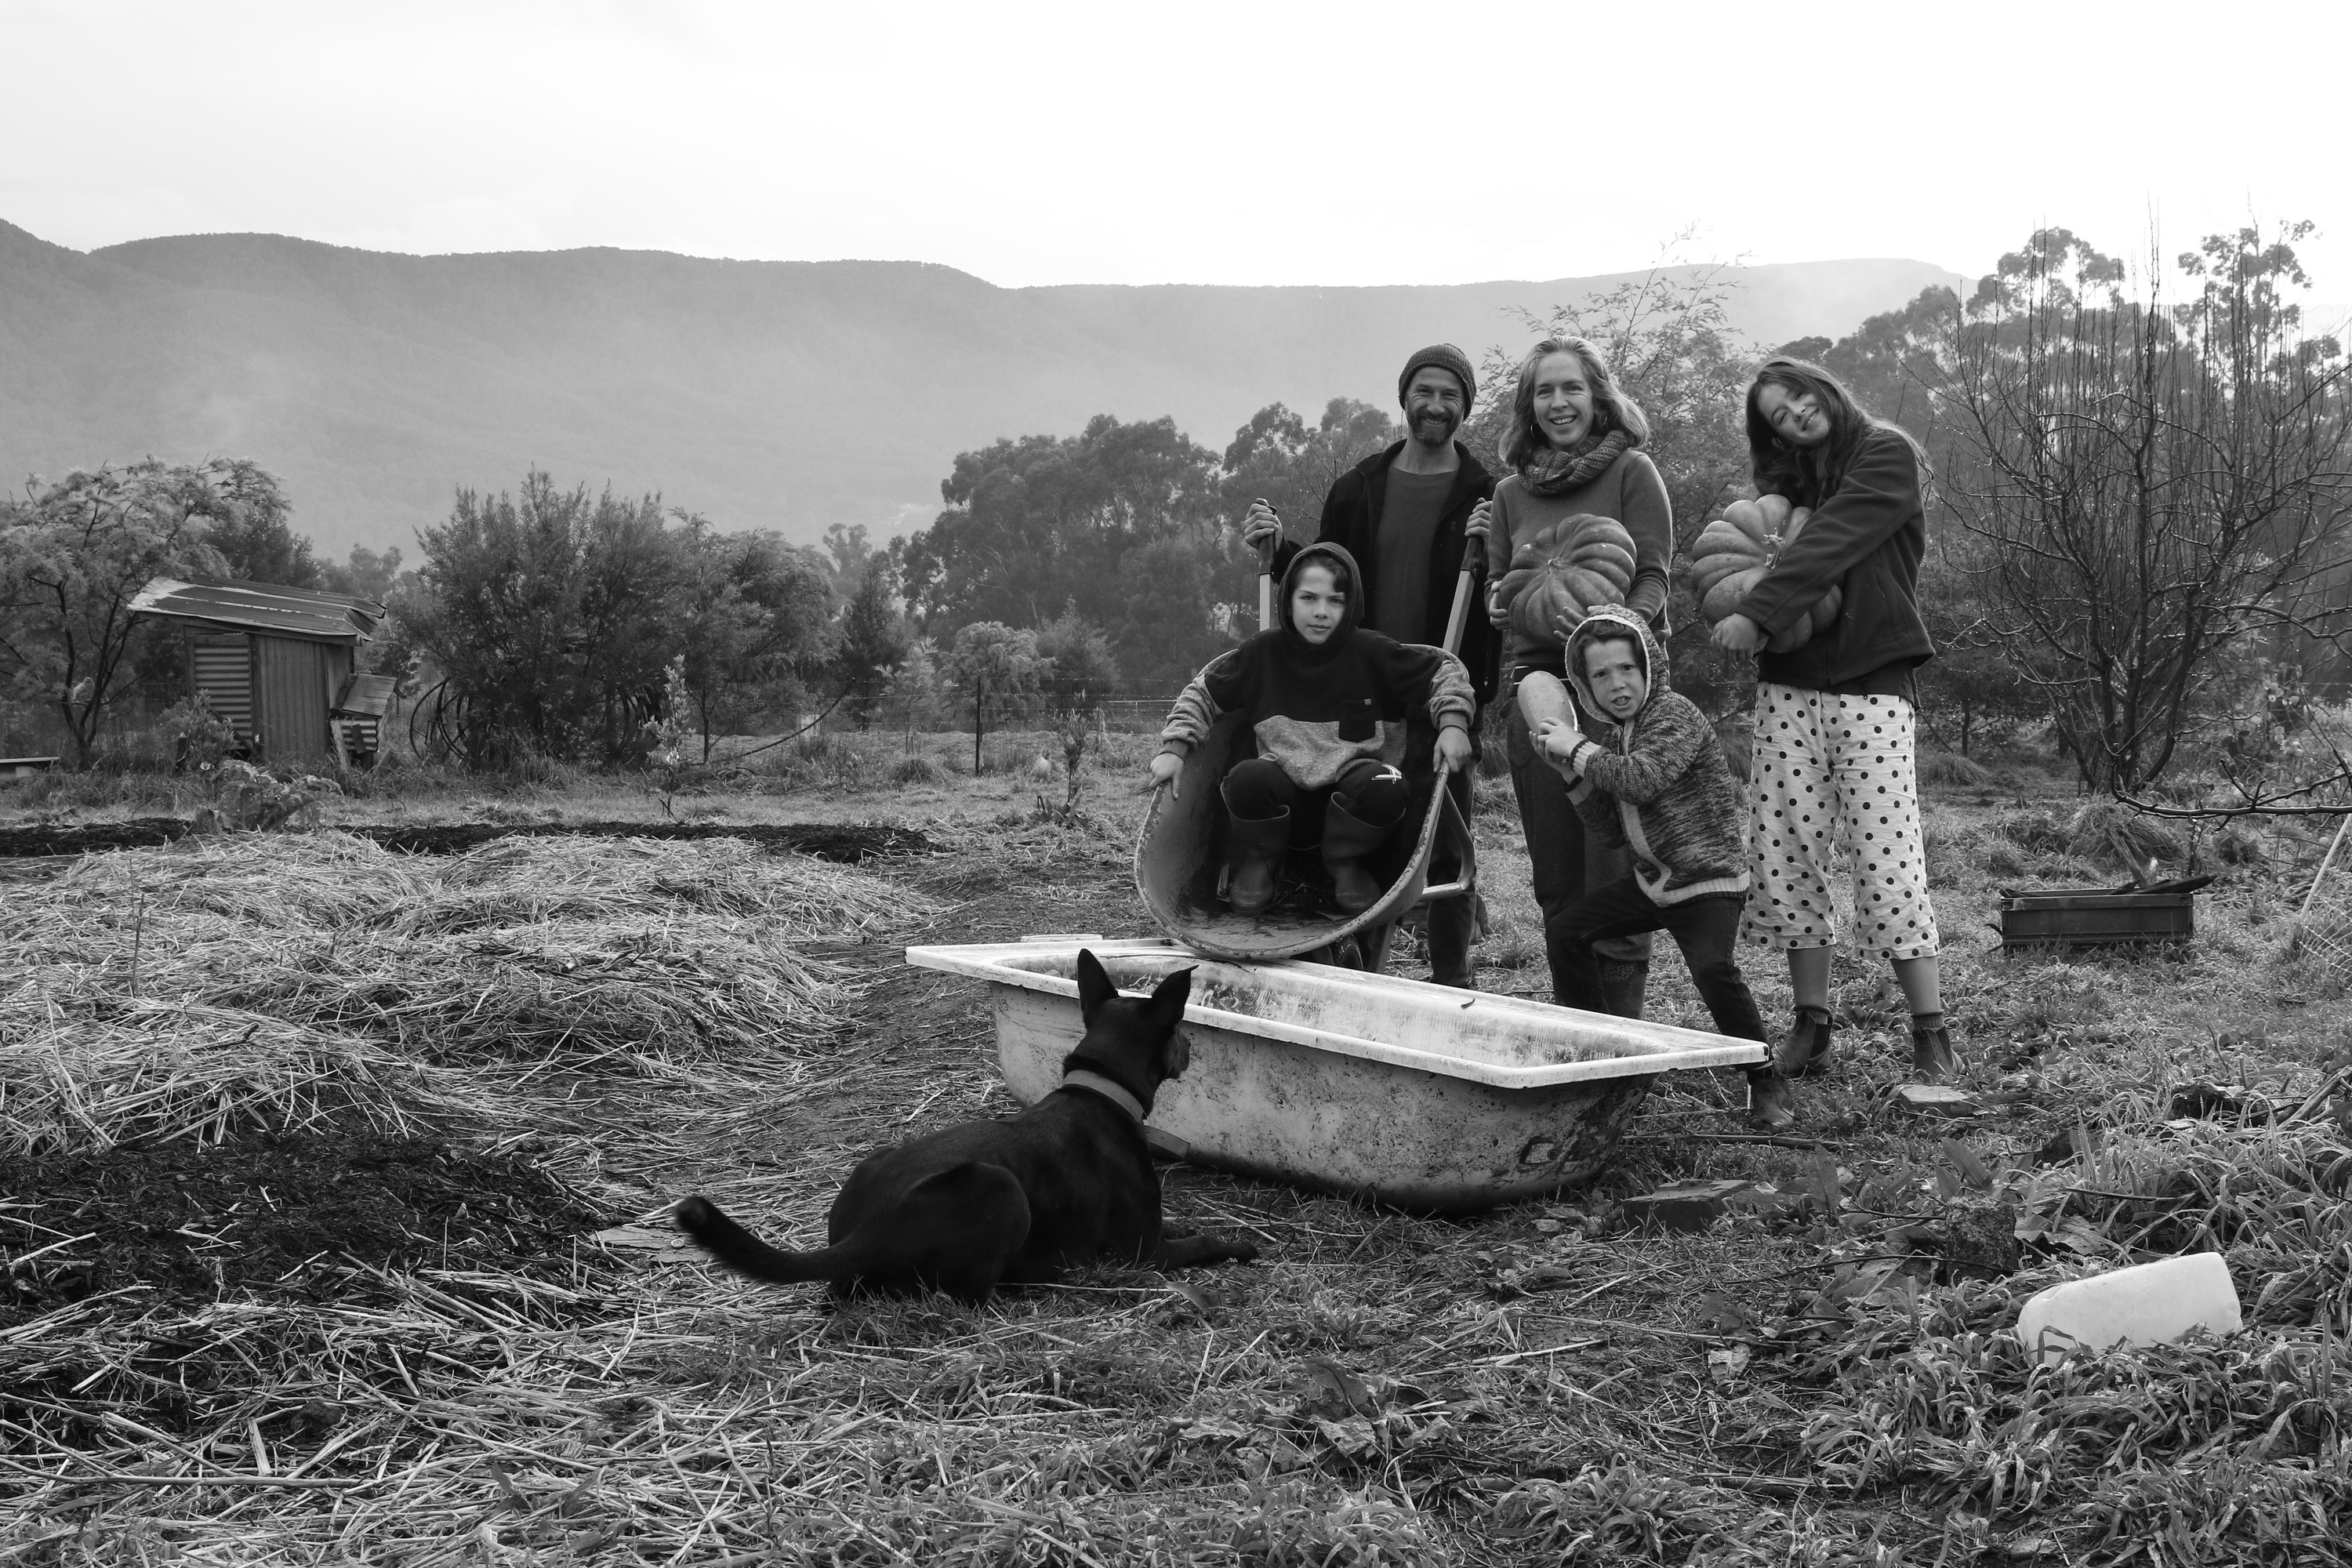 These portraits capture families in Australia's Yarra Valley during isolation